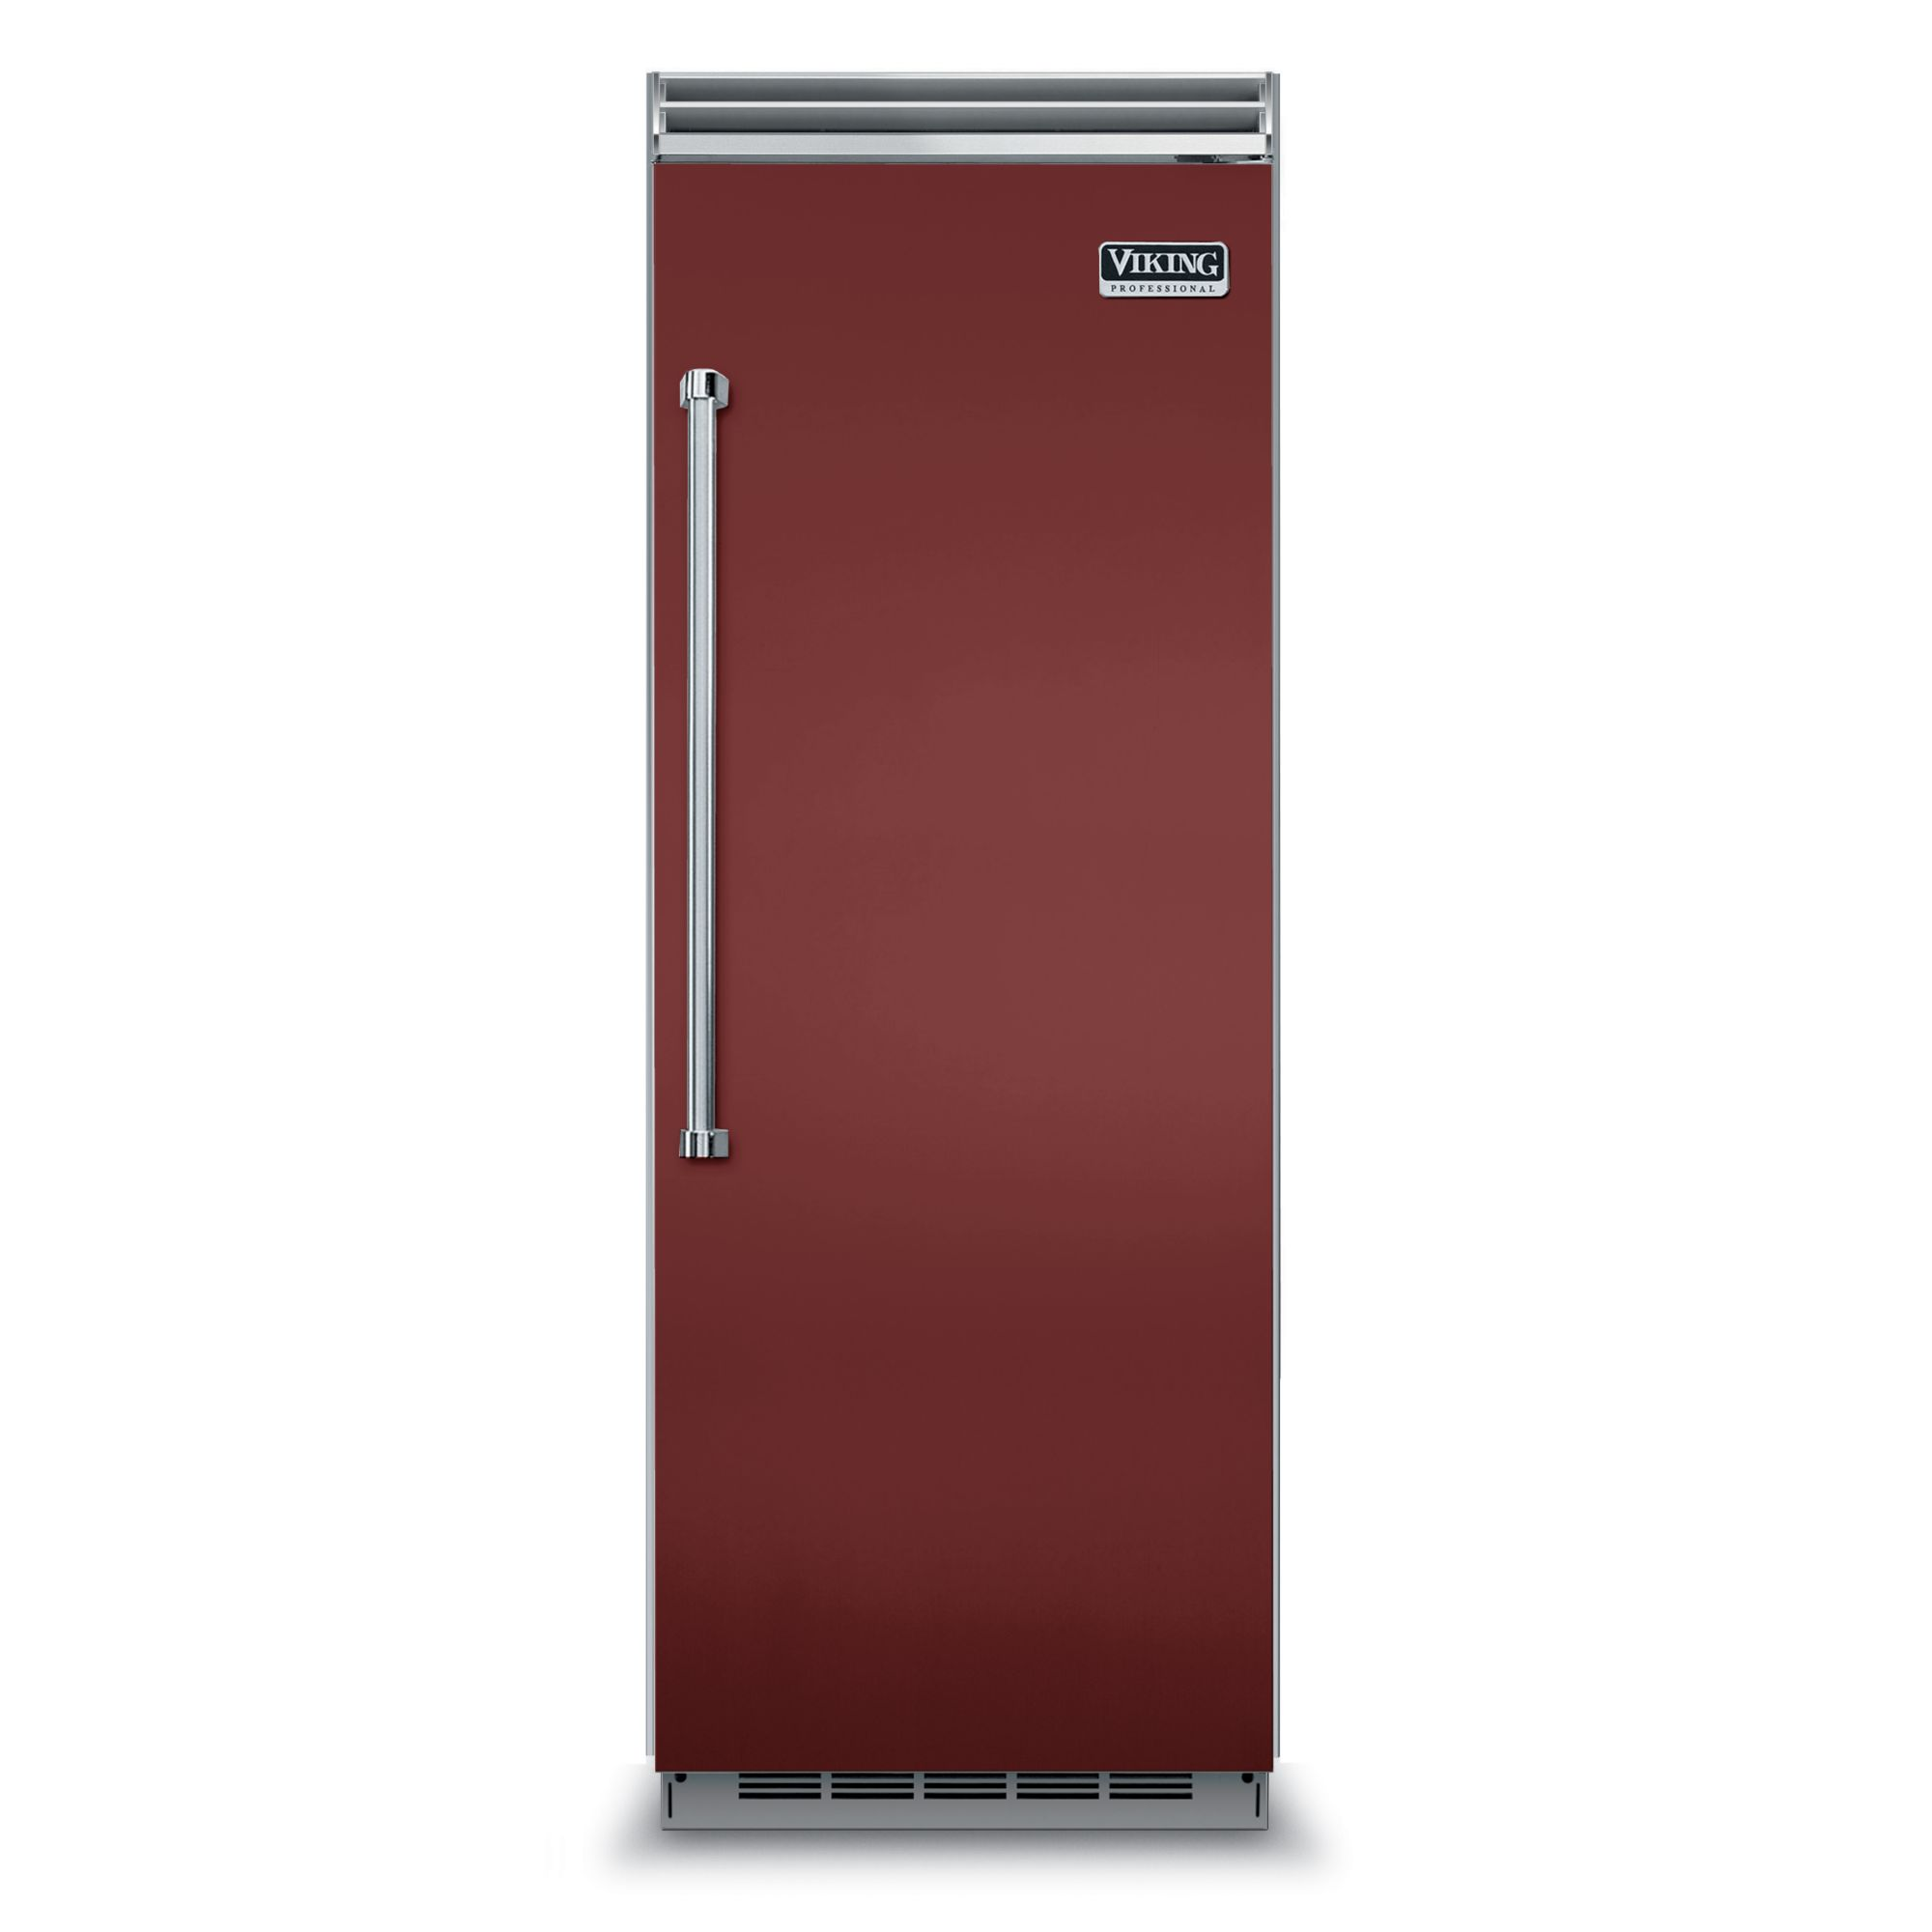 Viking Vcrb5303rre 30 Quot All Refrigerator Reduction Red